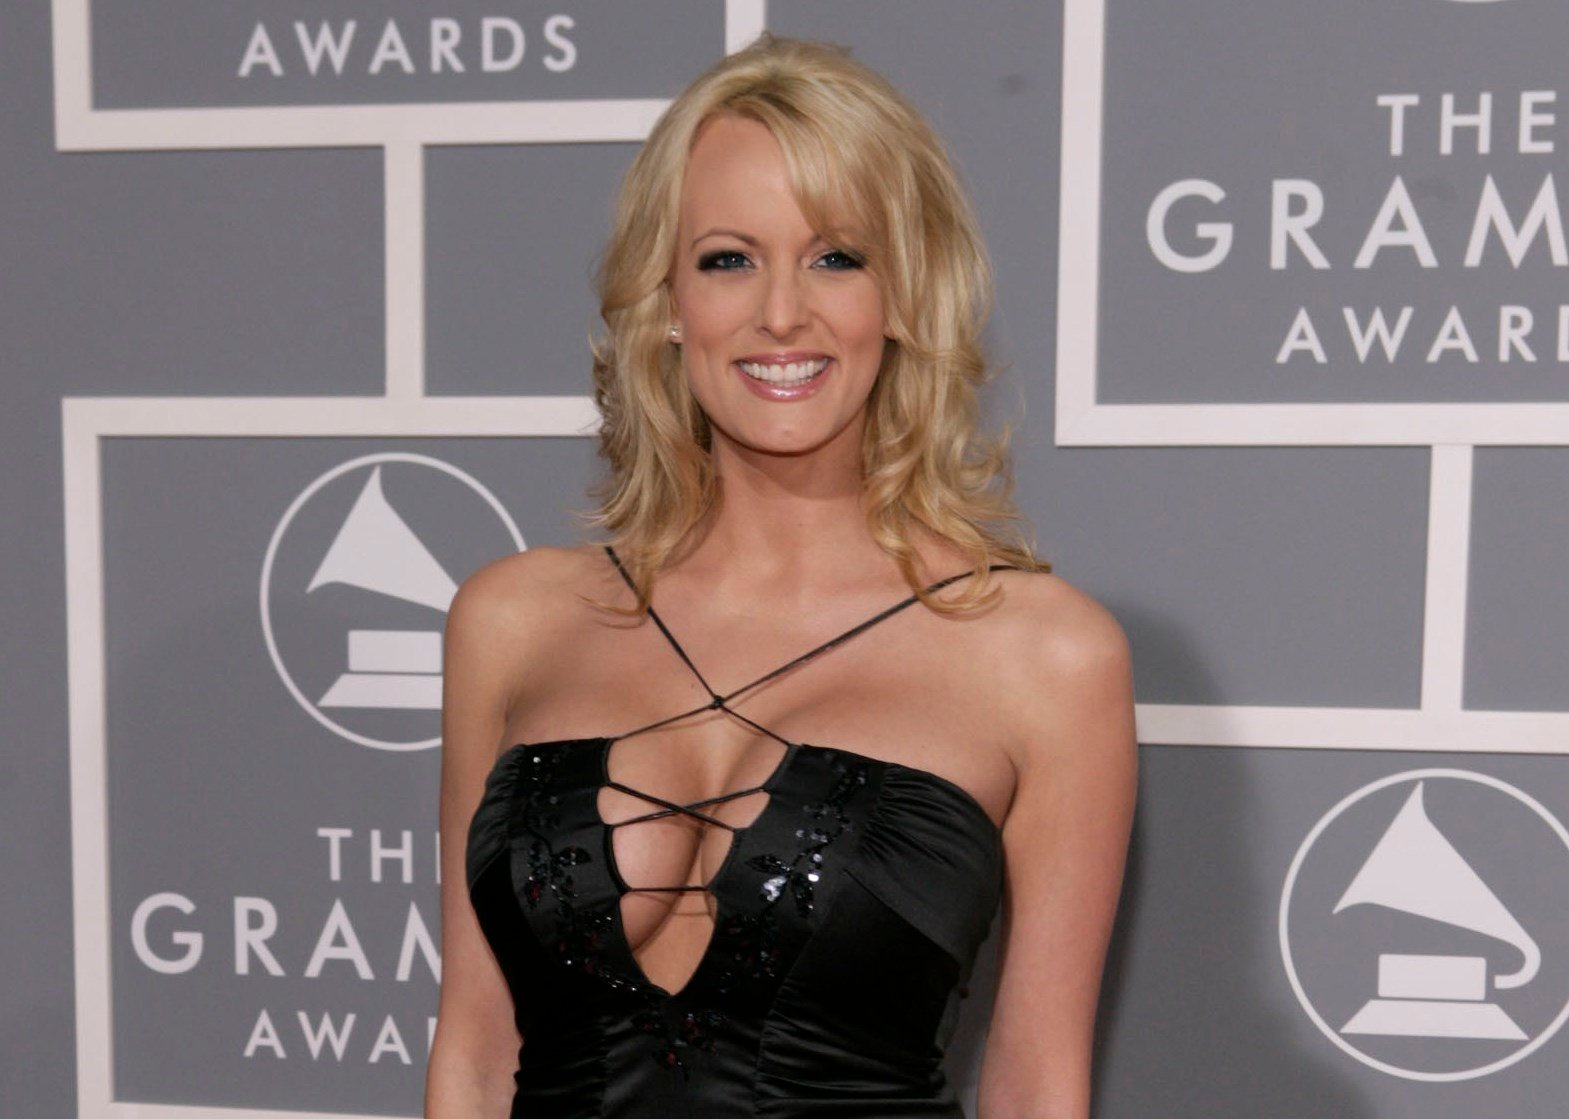 Trump lawyer claims porn star Stormy Daniels is liable for $20million